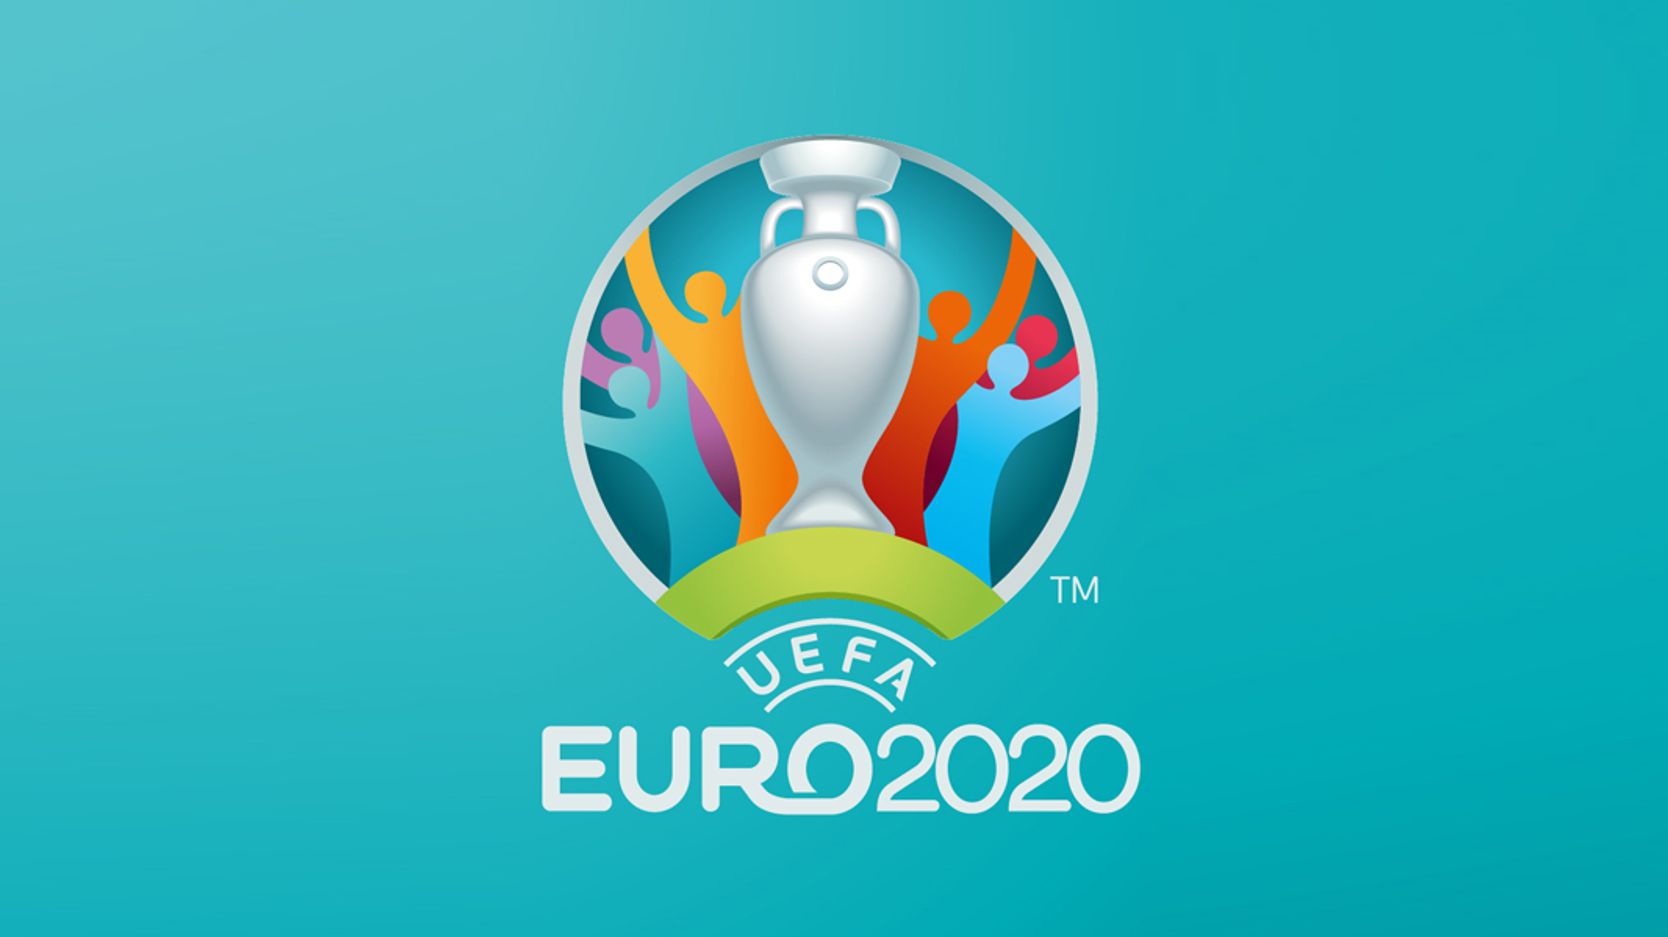 Uefa confirmed: Euro 2020 postponed